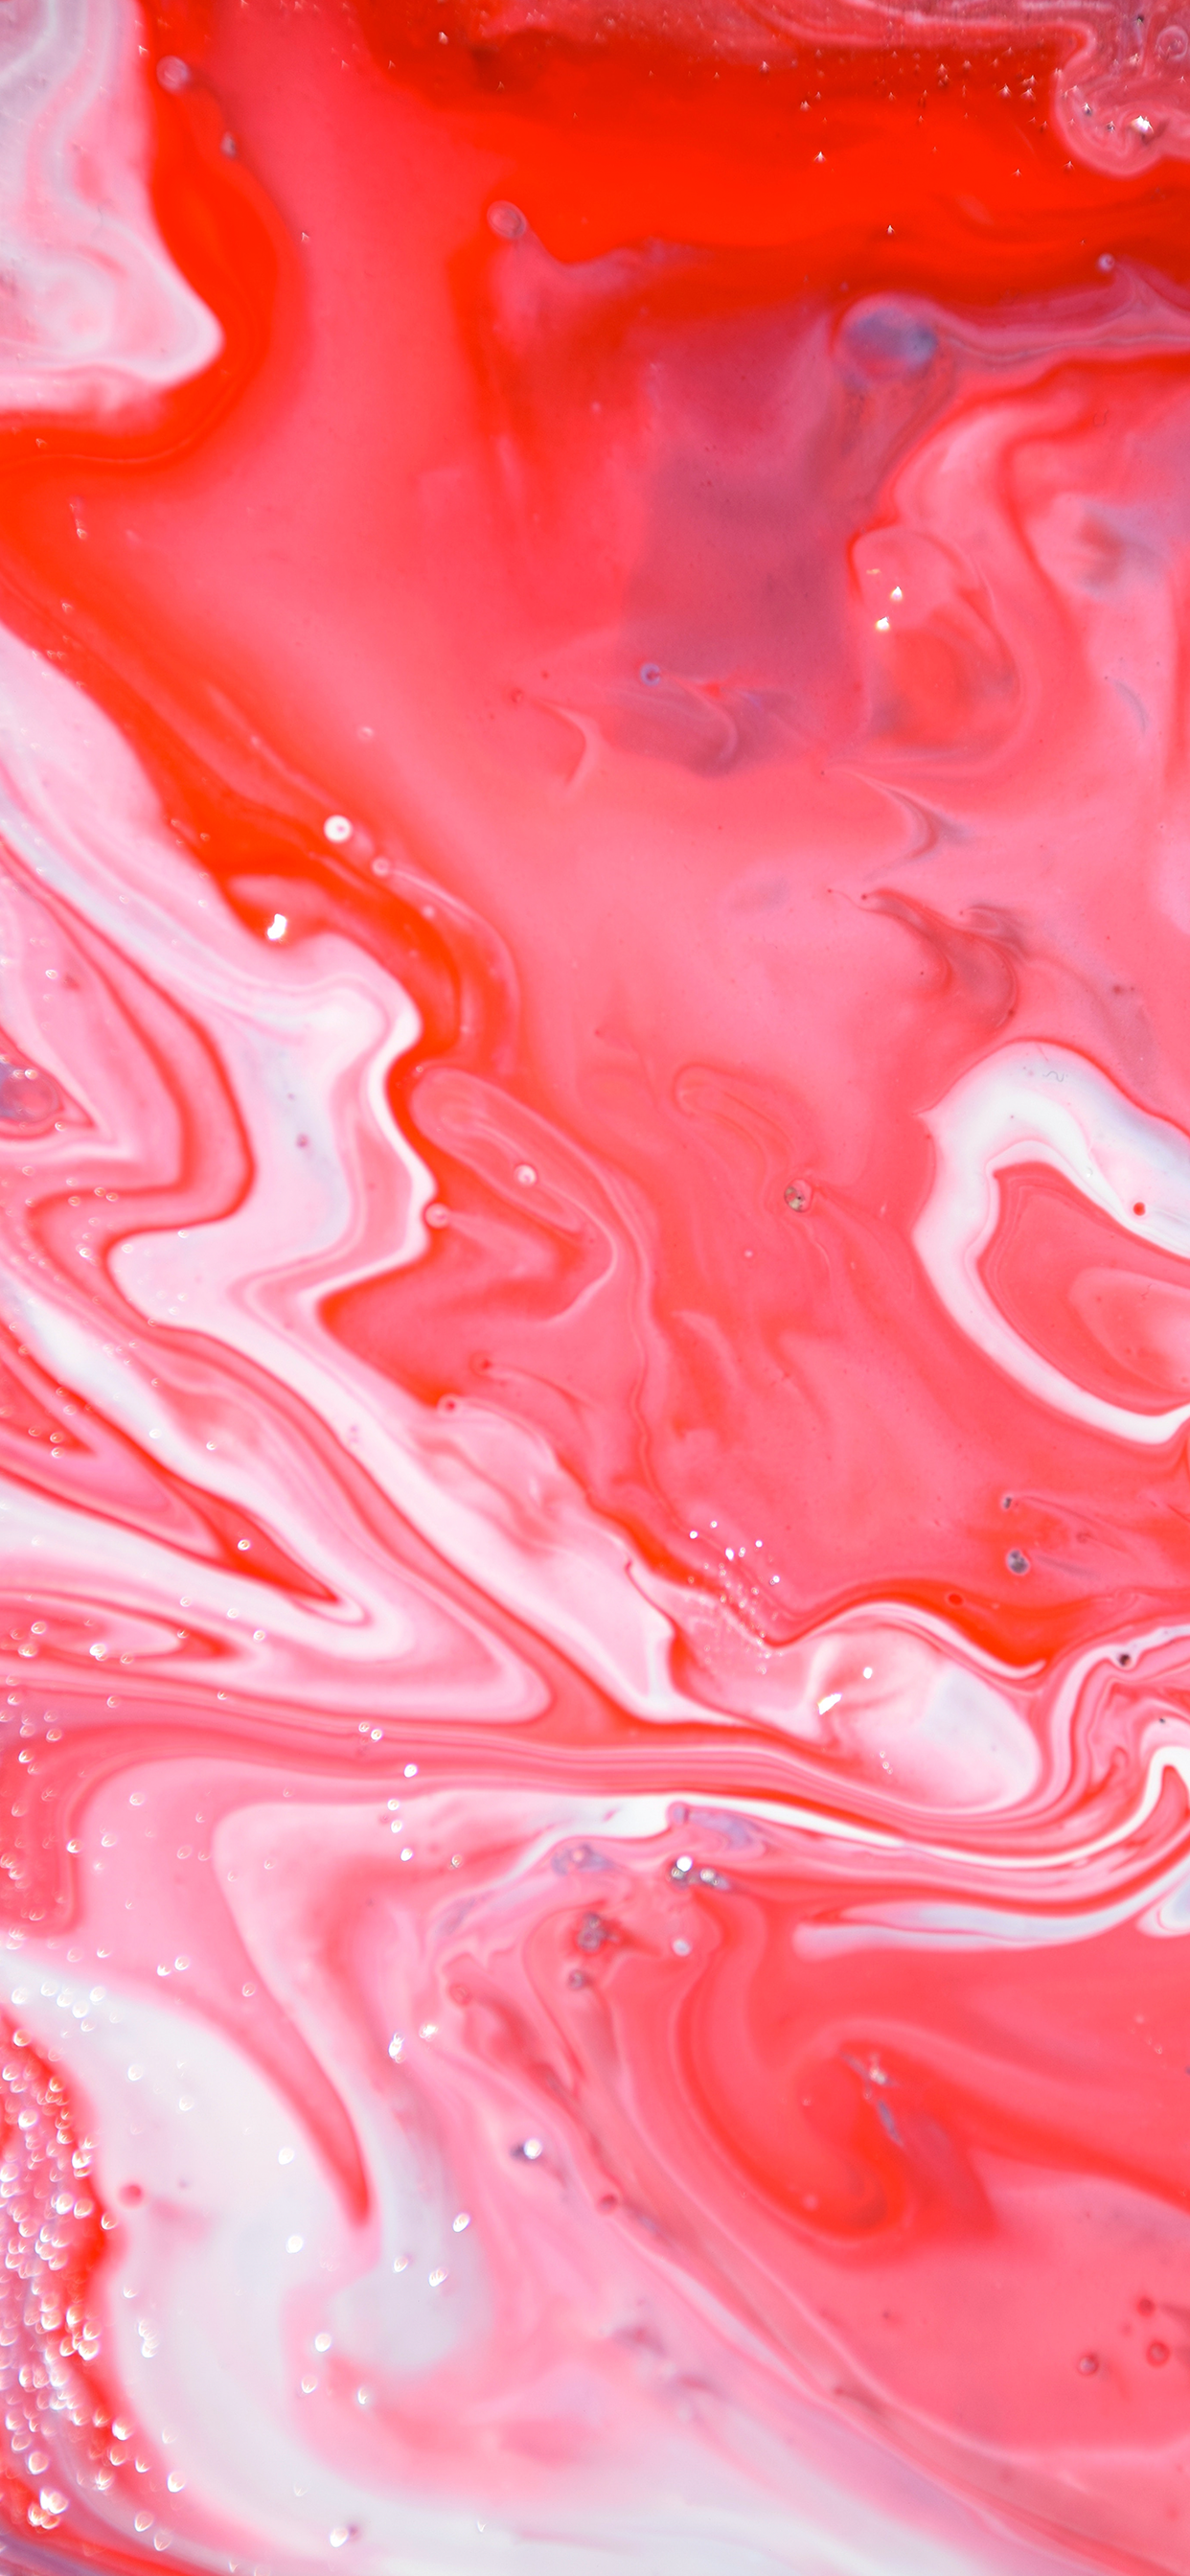 iPhone wallpaper abstract liquid pink Fonds d'écran iPhone du 22/11/2018